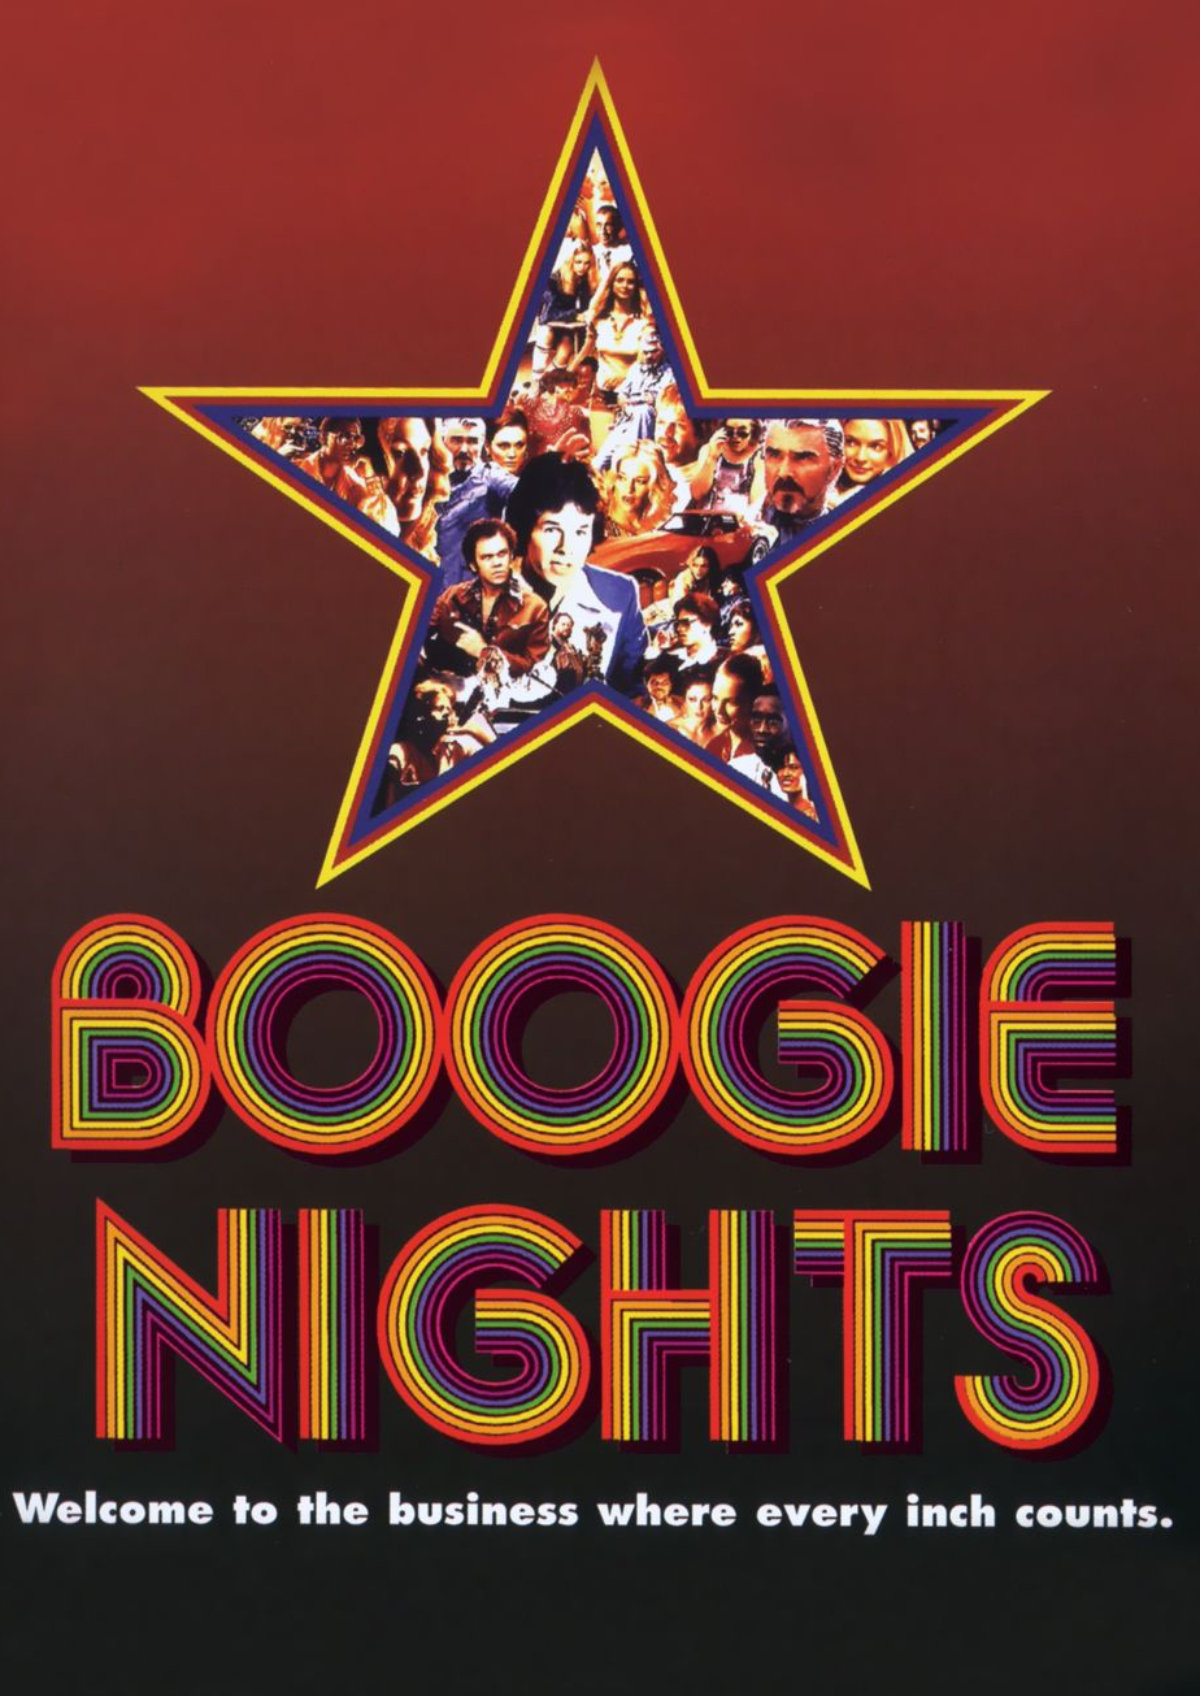 pornography career of a young man and the importance and complications of family in boogie nights a